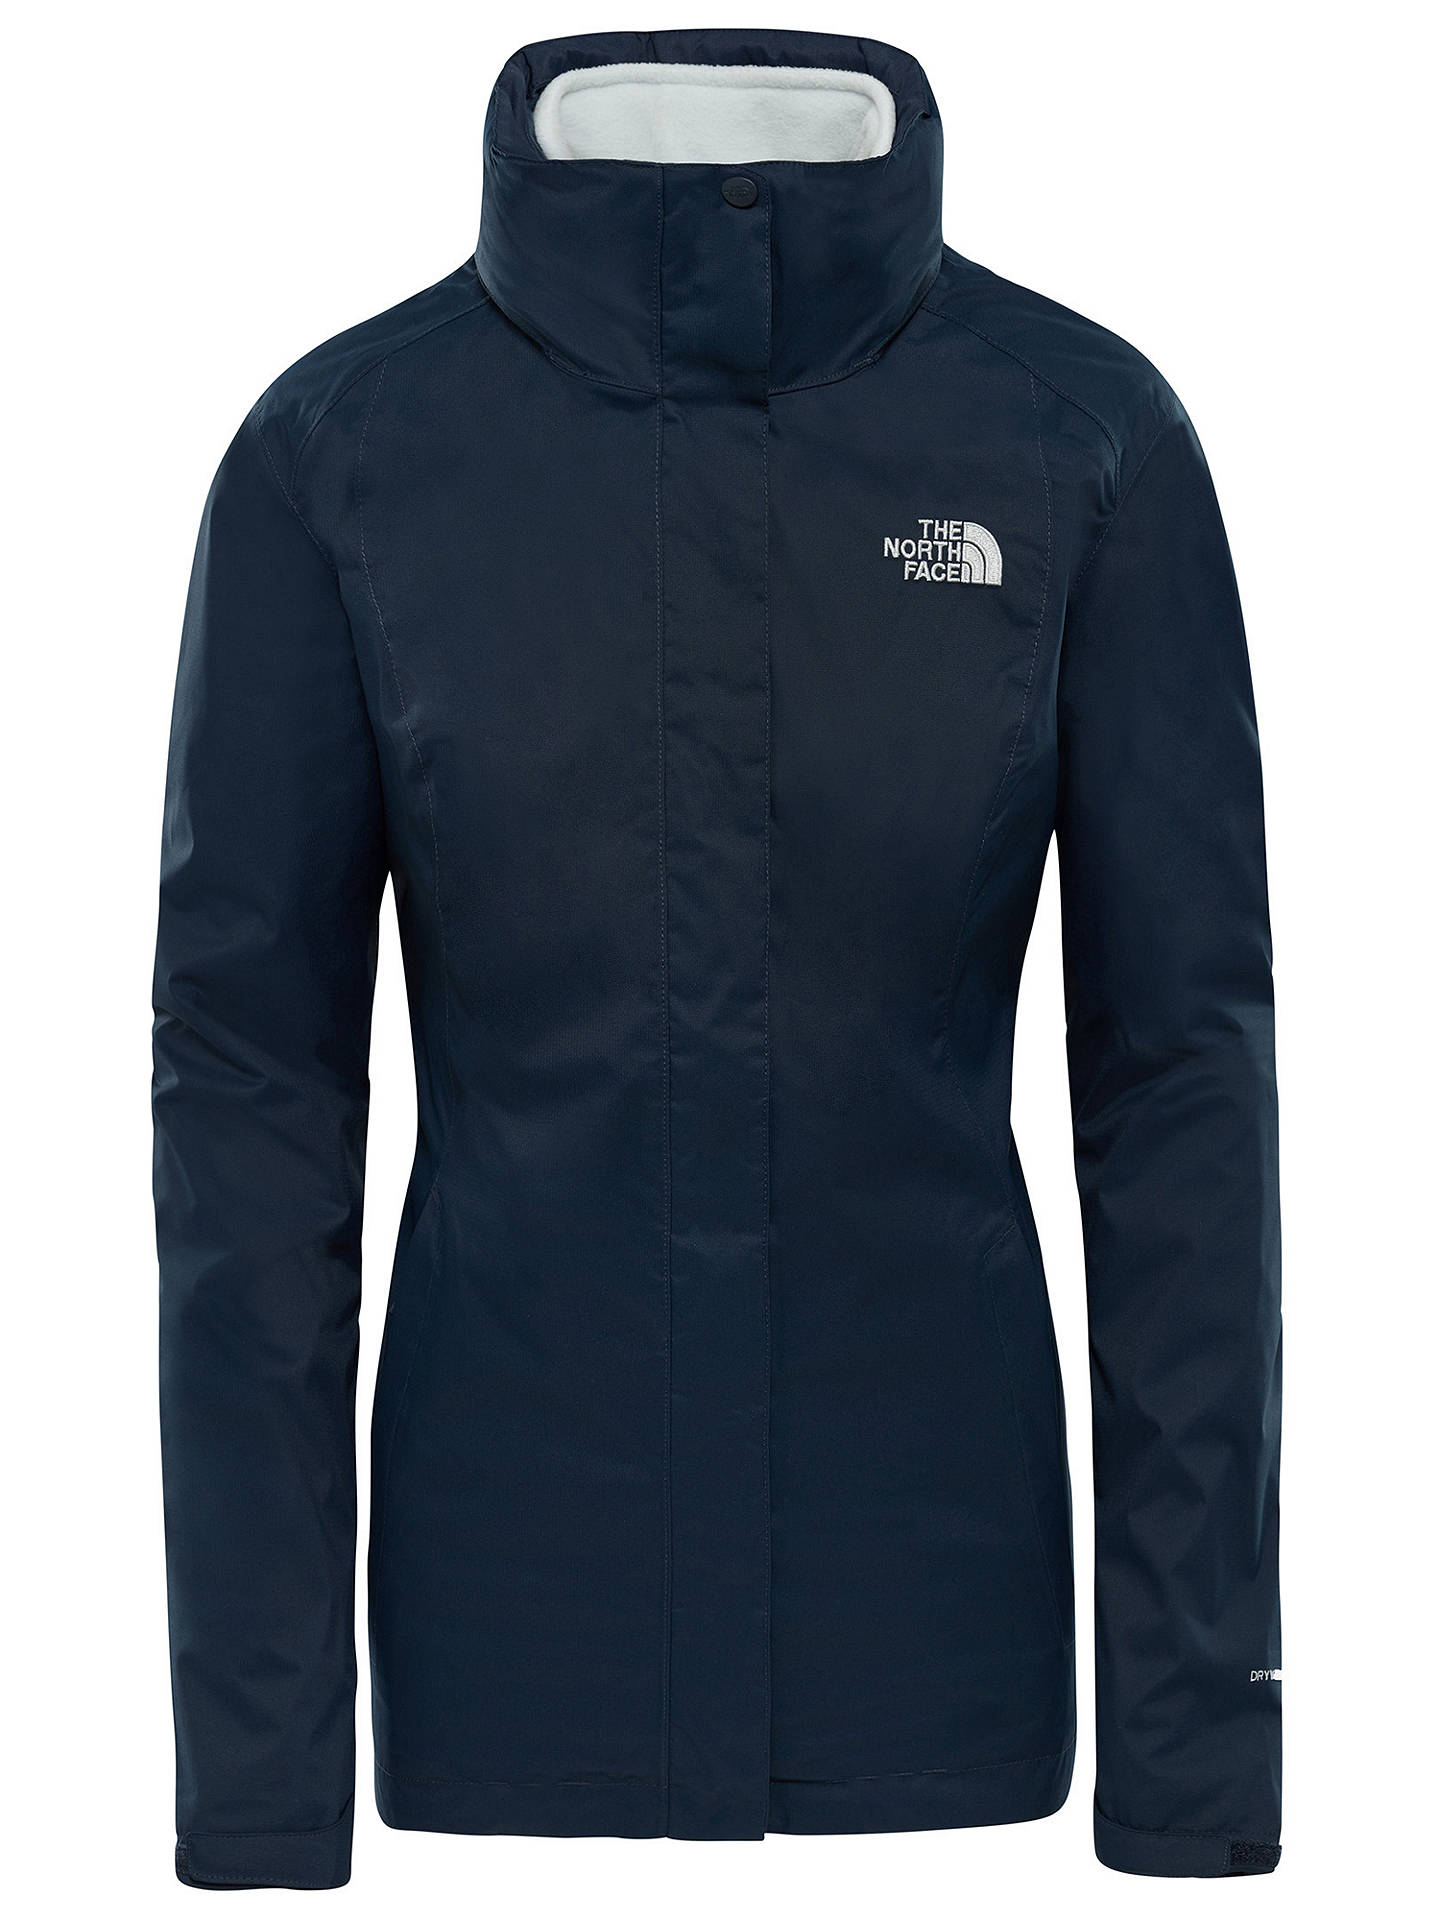 Buy The North Face Evolve II Triclimate Women's Jacket, Urban Navy/Tin Grey, L Online at johnlewis.com